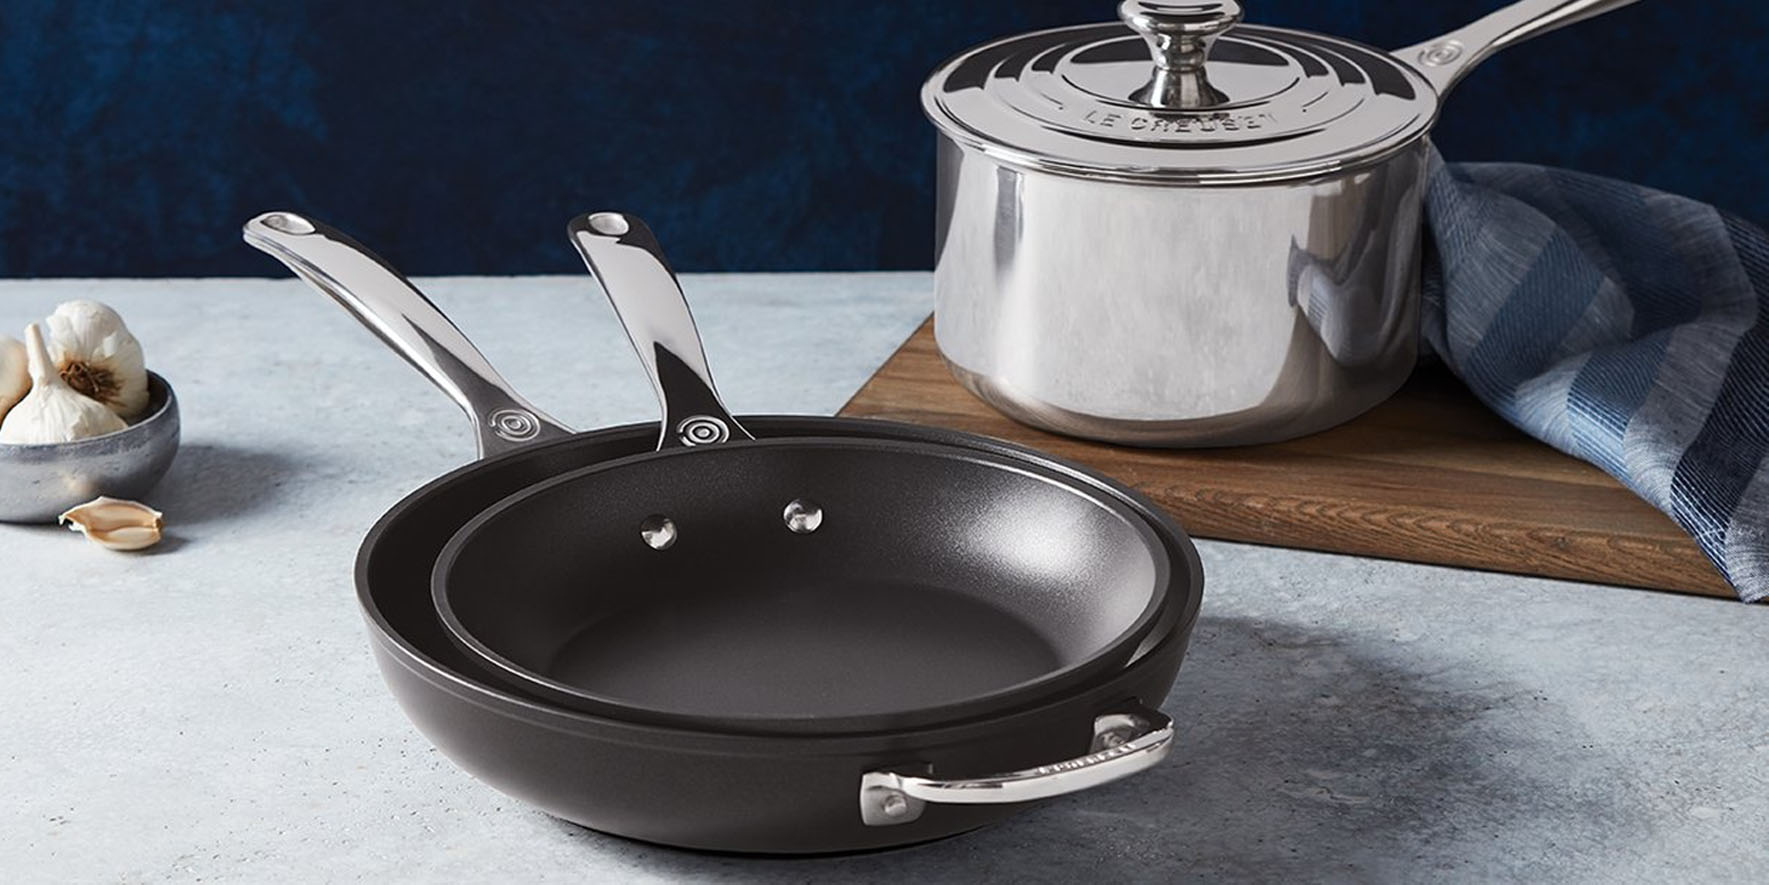 Le Creuset pans, stainless steel sets, Dutch ovens and more from $30 at Hautelook